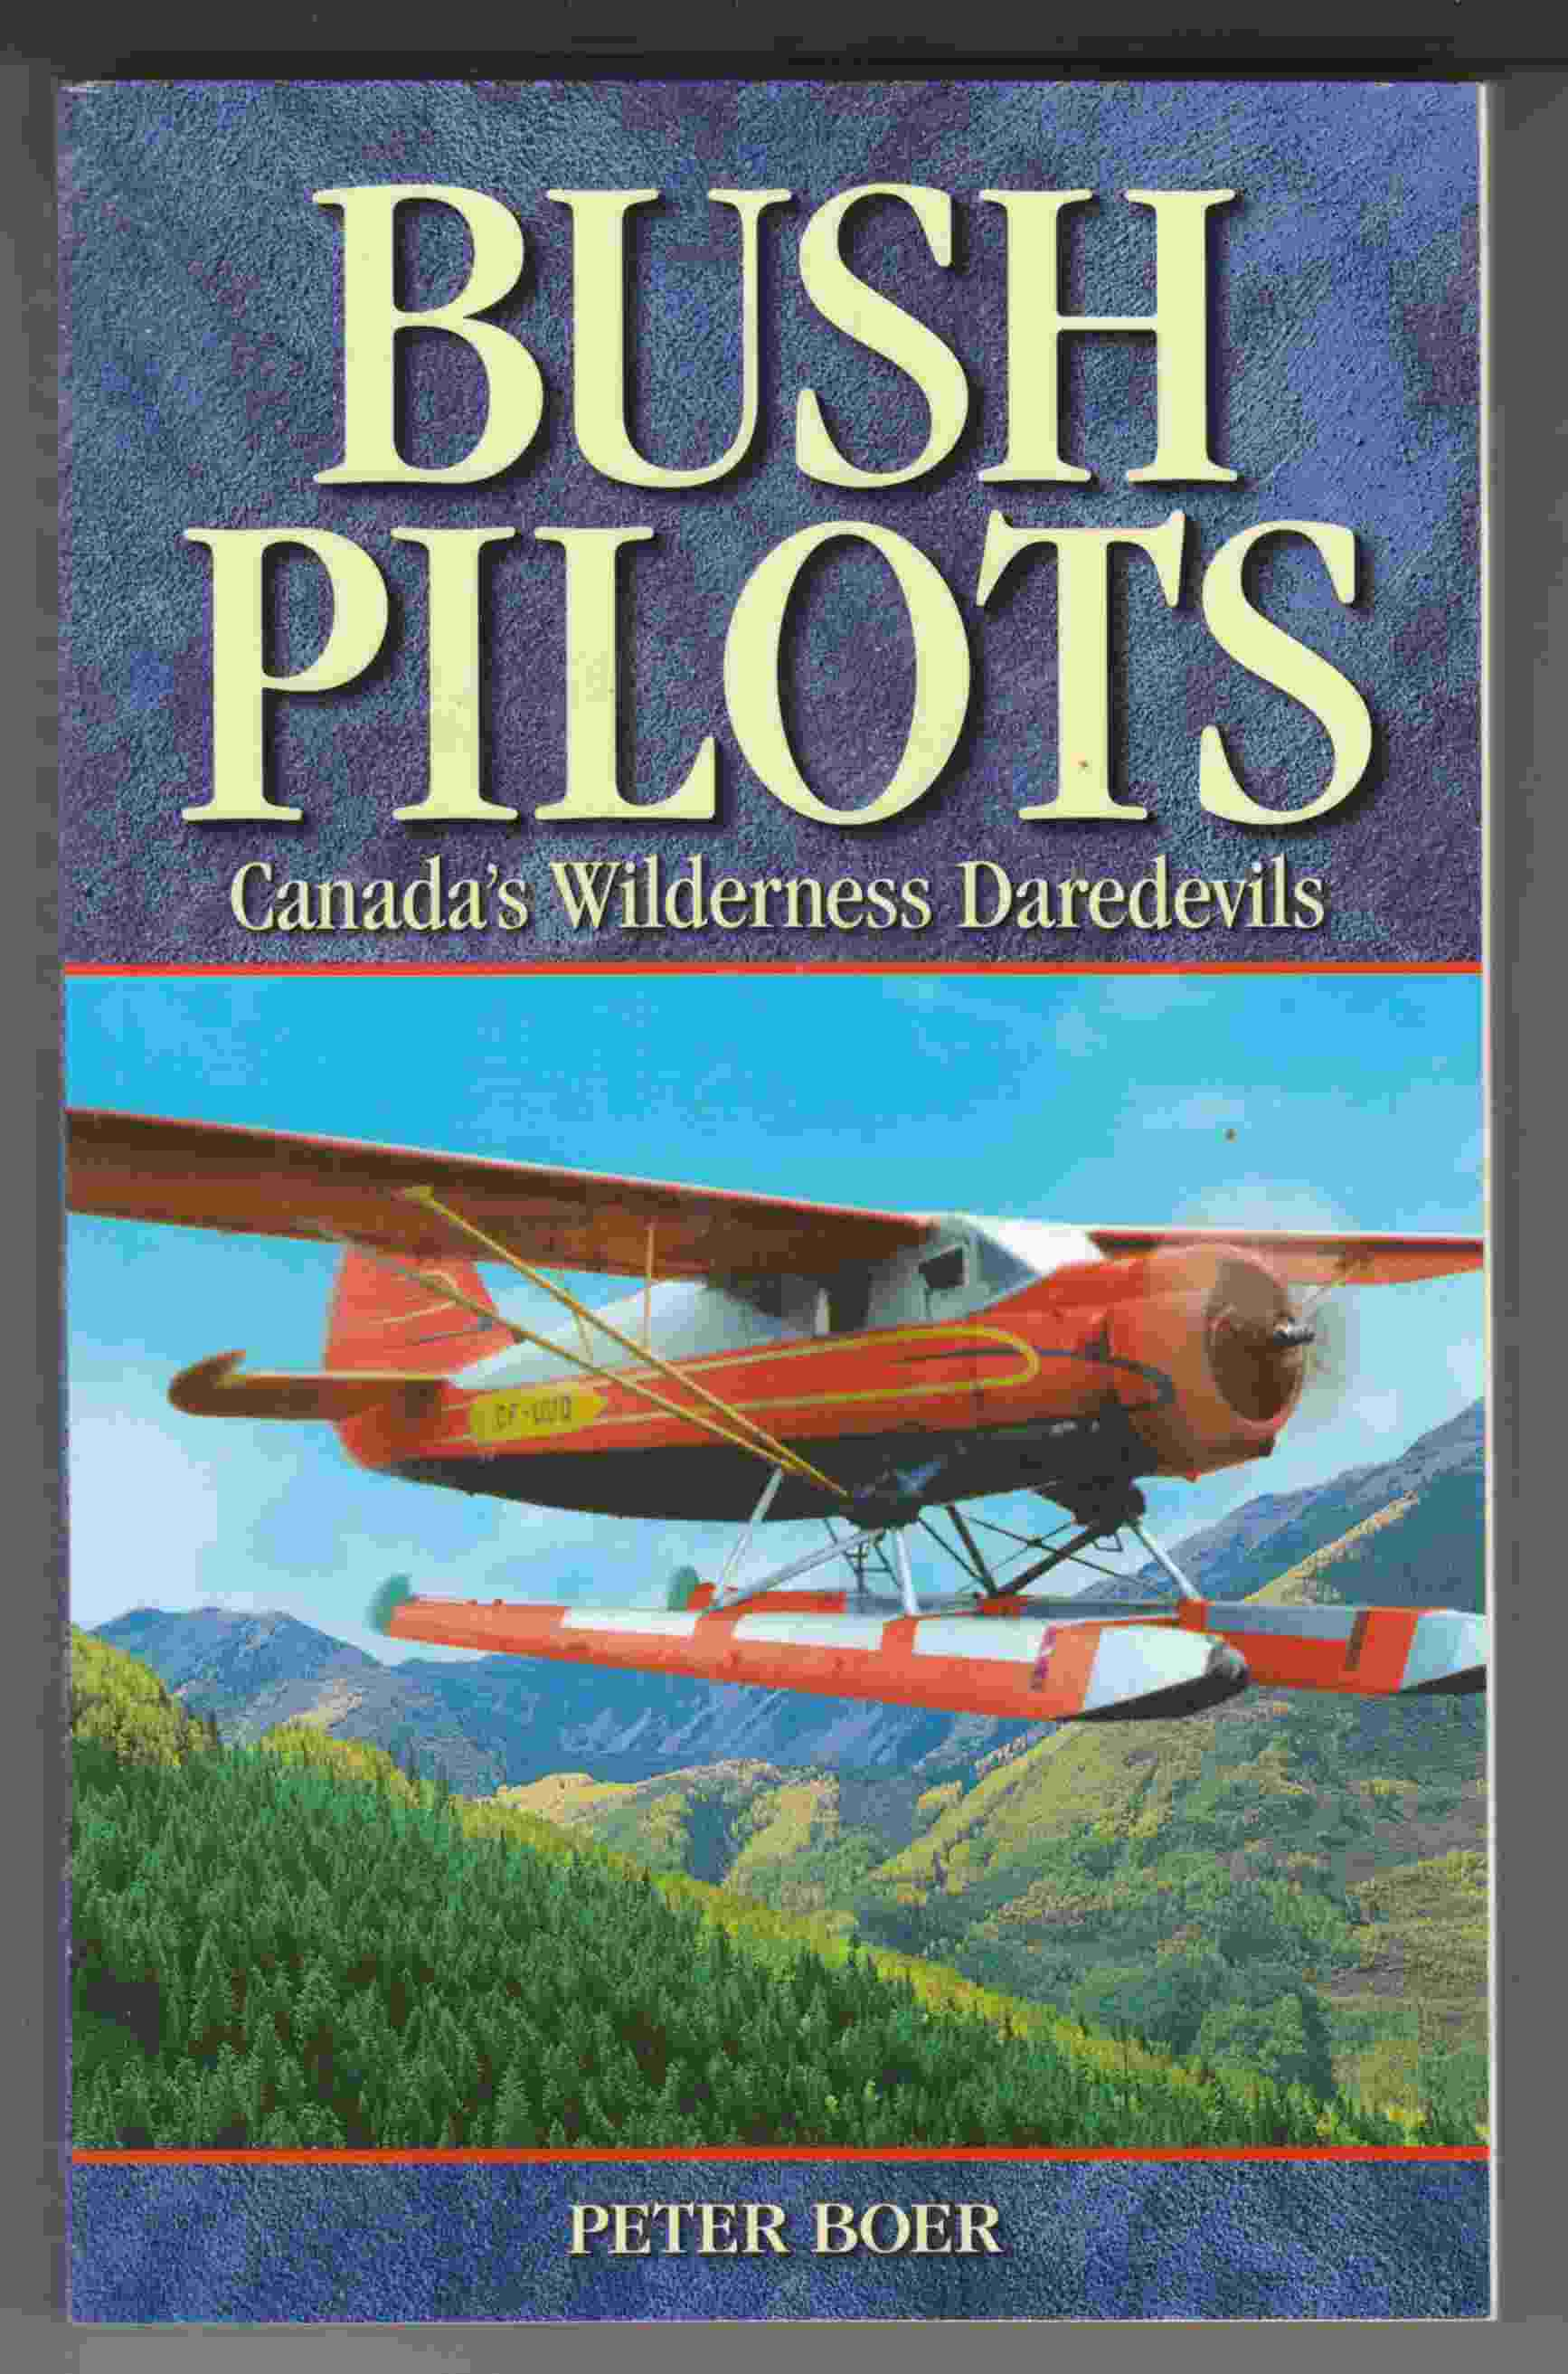 Image for Bush Pilots Canada's Wilderness Daredevils